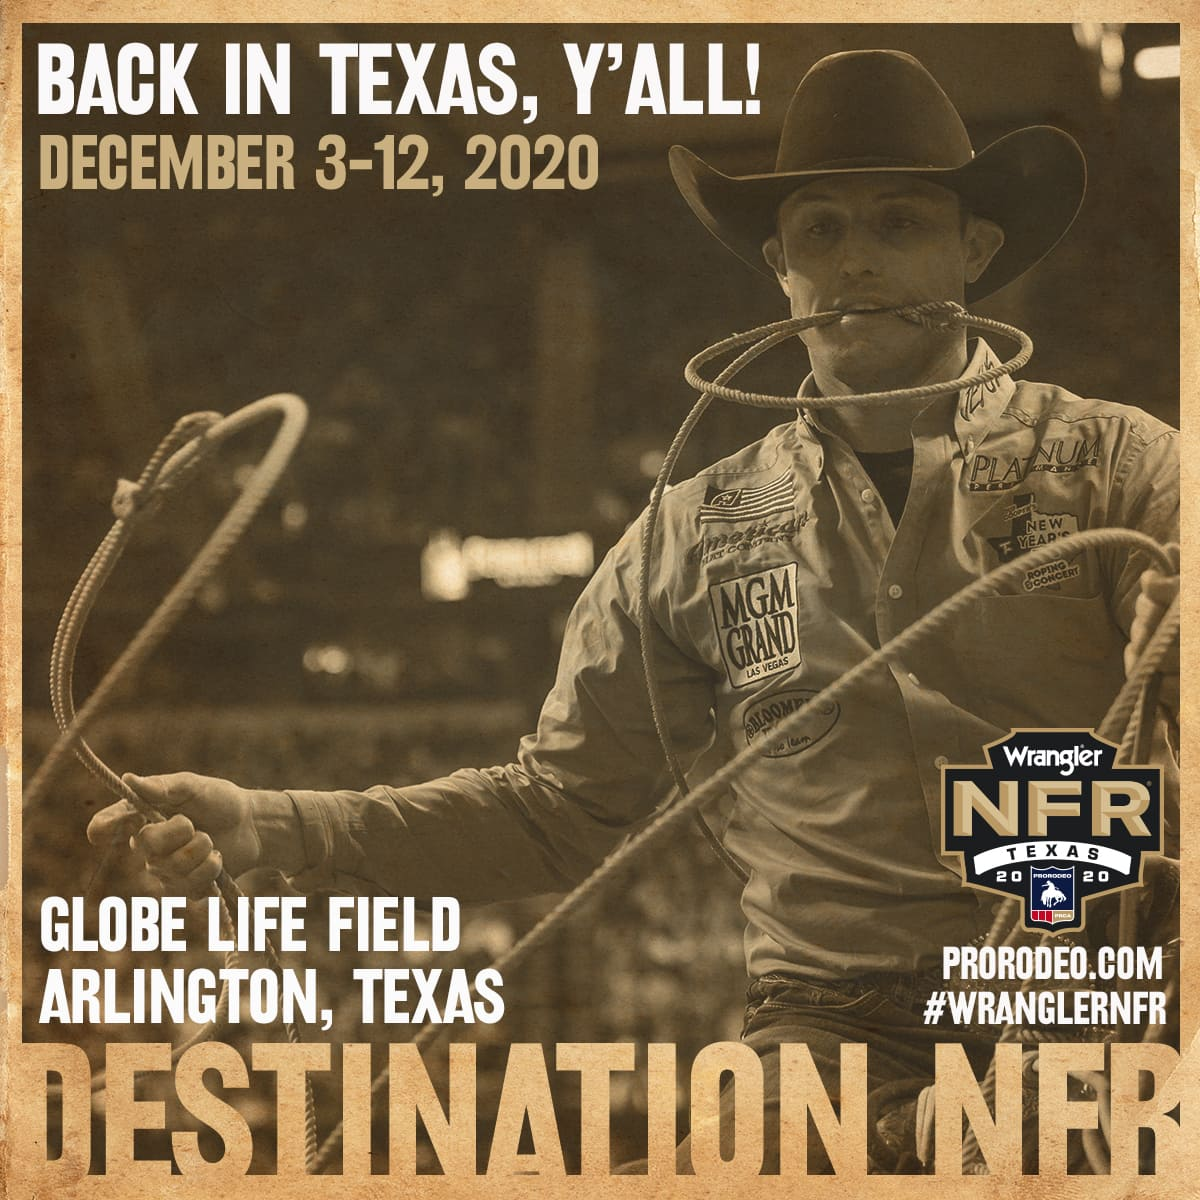 National Finals Rodeo poster